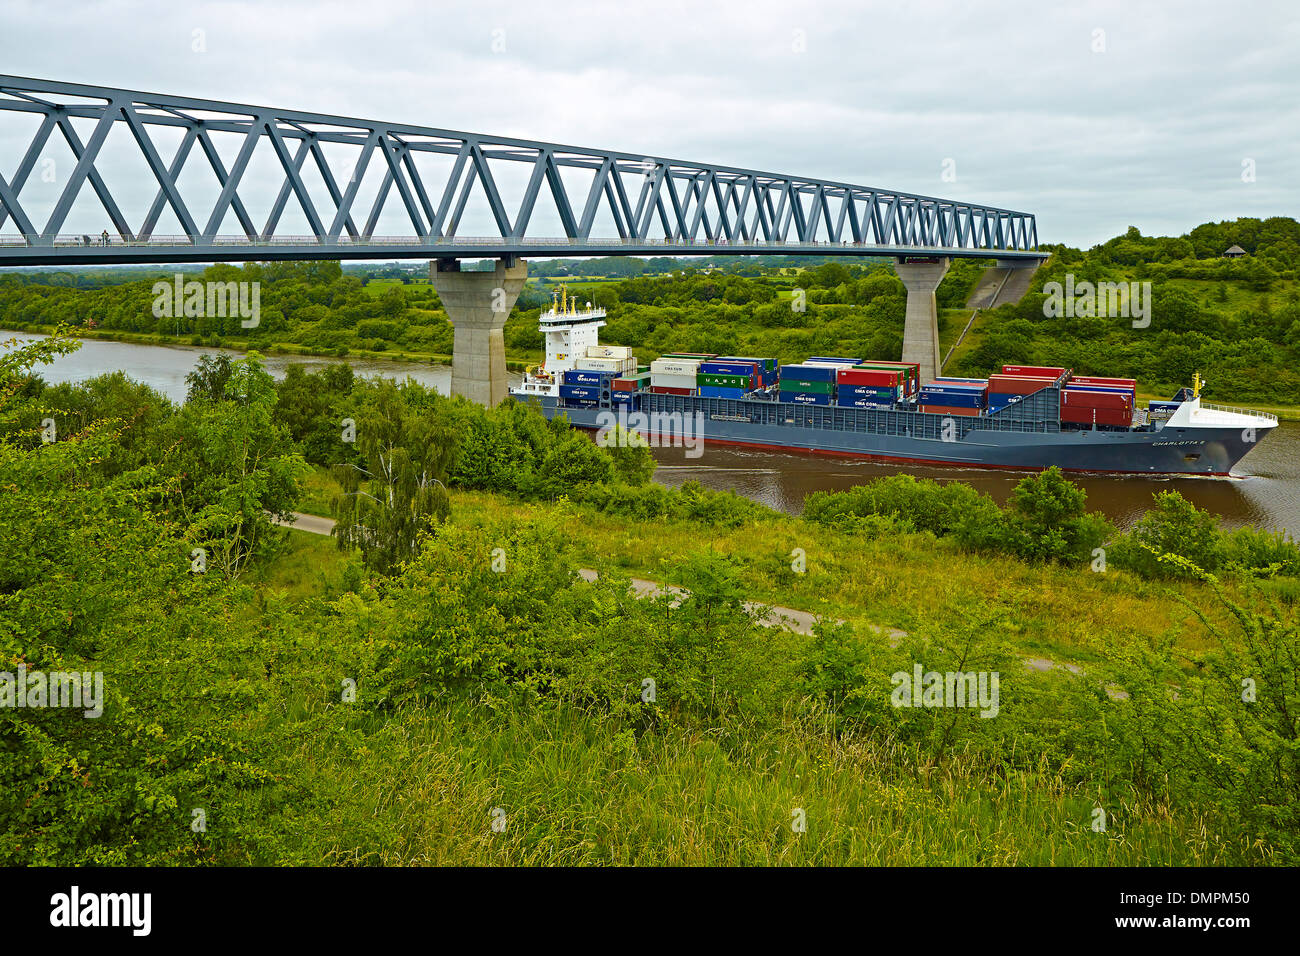 Container ship Charlotta B in the Kiel Canal near Albersdorf, district of Dithmarschen, Schleswig-Holstein, Germany - Stock Image